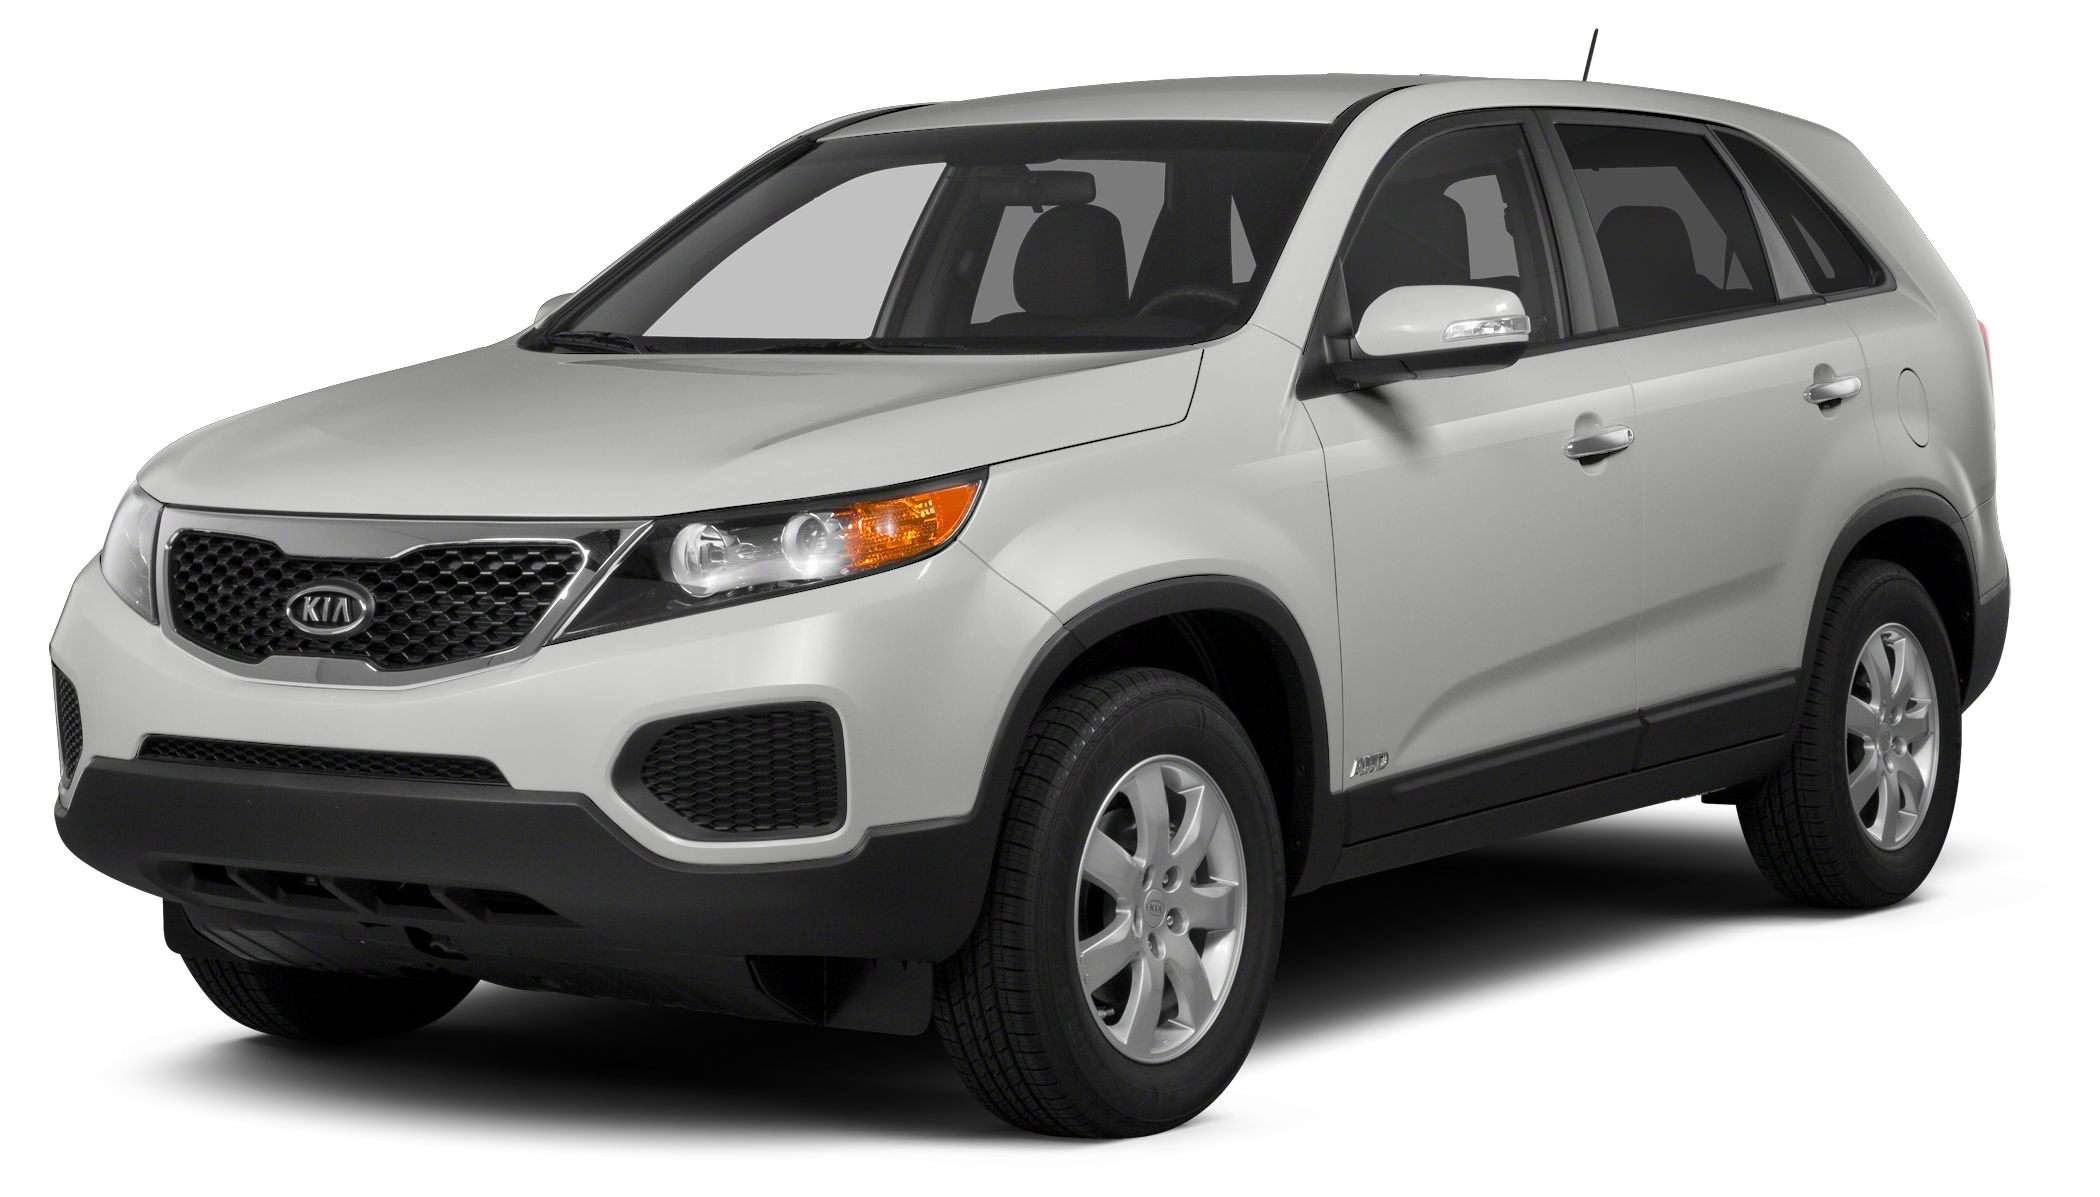 2012 Kia Sorento EX Environmentally-friendly and gas-sipping this 2012 Kia Sorento EX is powered